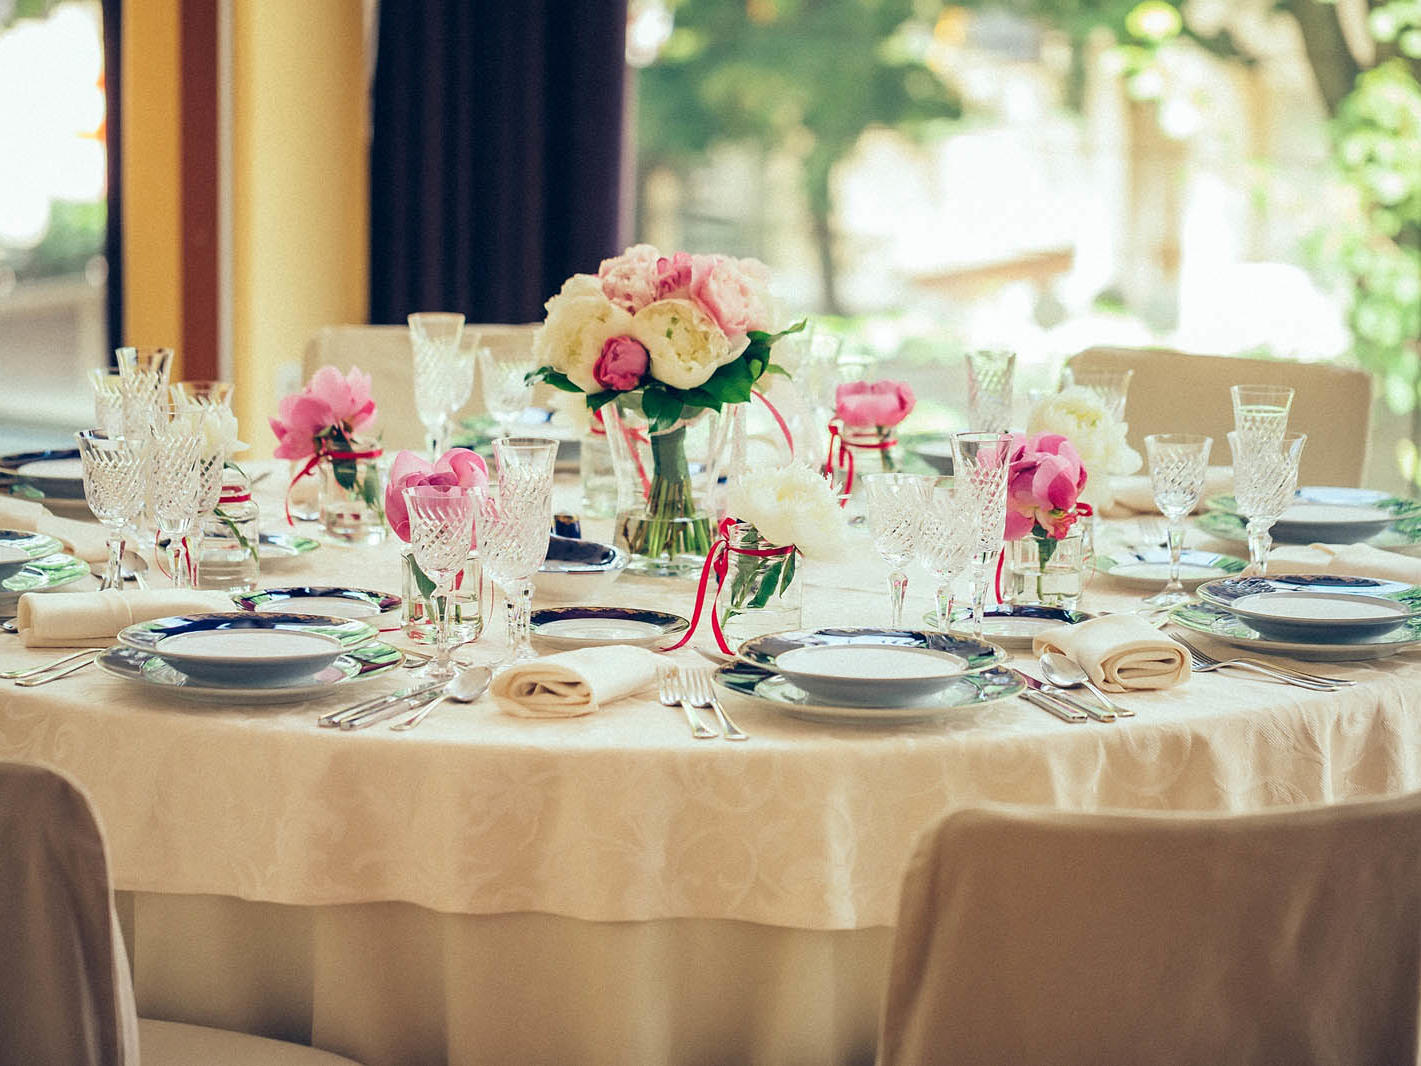 Union Hotels Collection Ljubljana Slovenia wedding 2